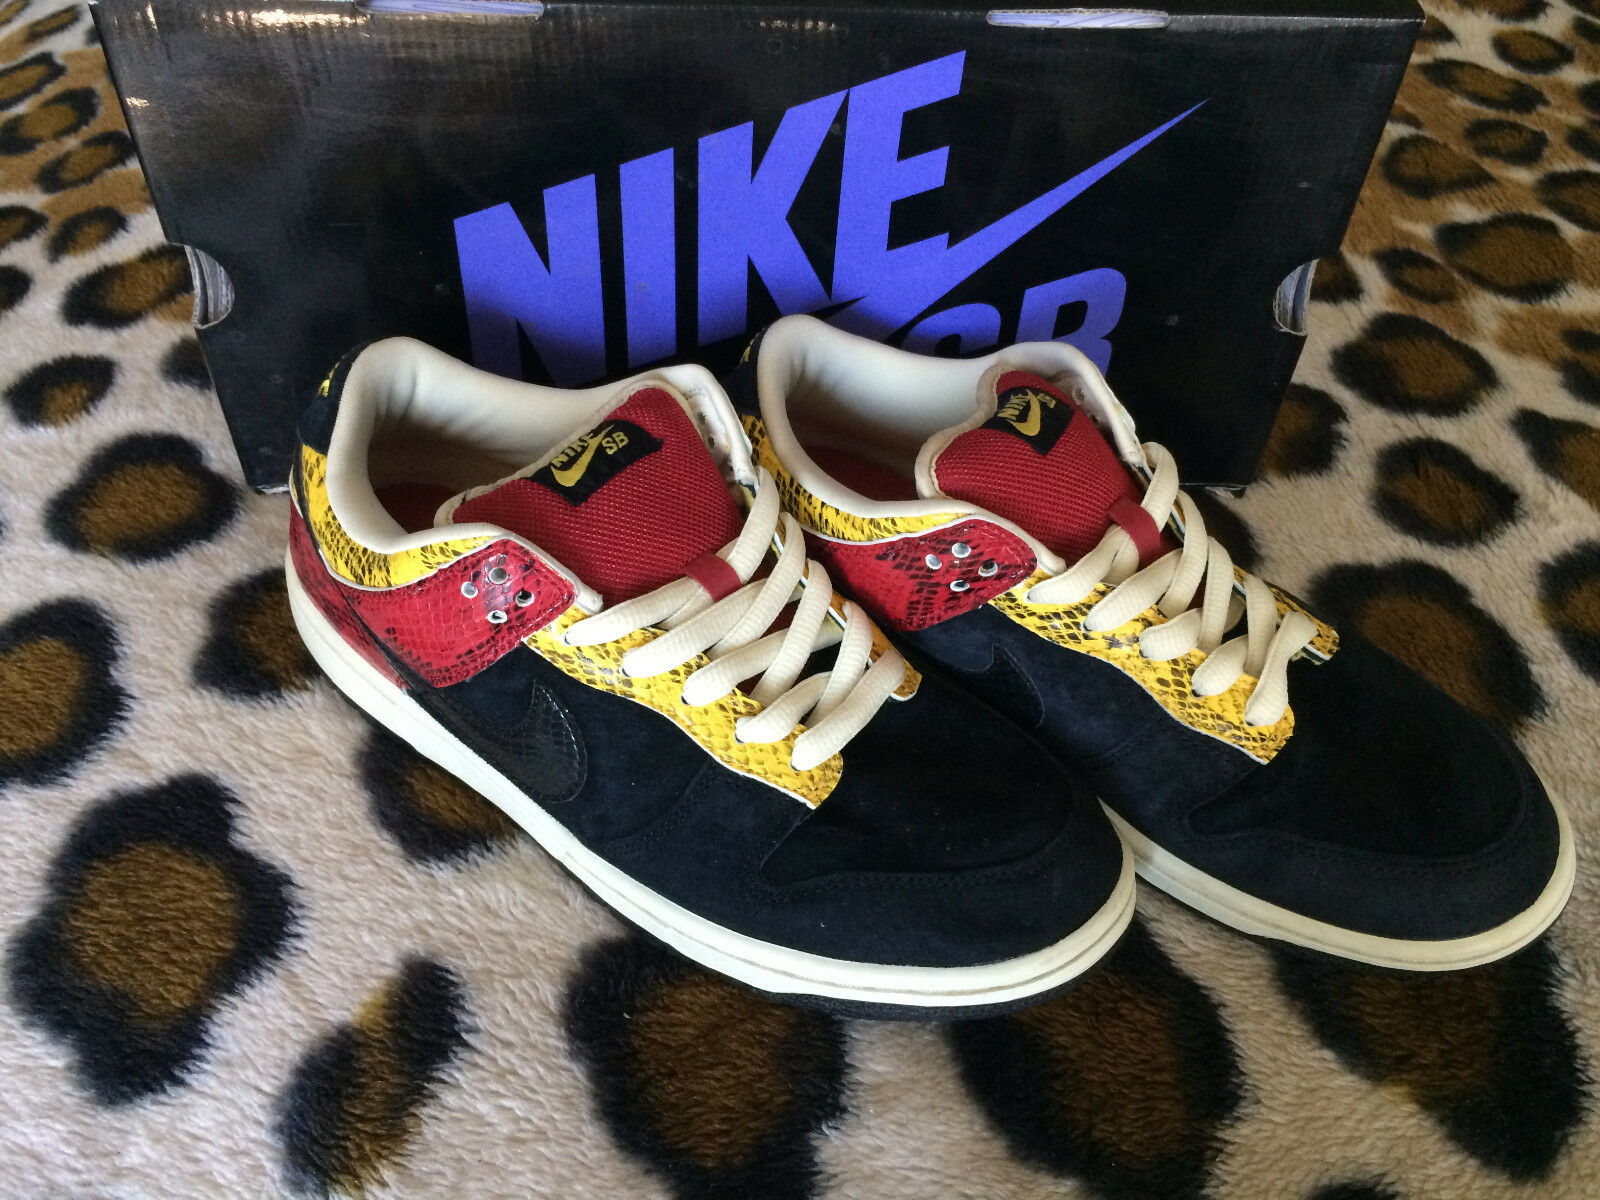 PRE-OWNED Premium Nike SB Dunk faible Premium PRE-OWNED SZ 8.5 Snake Goldenrod 313170-701 SUPREME a2e2dd